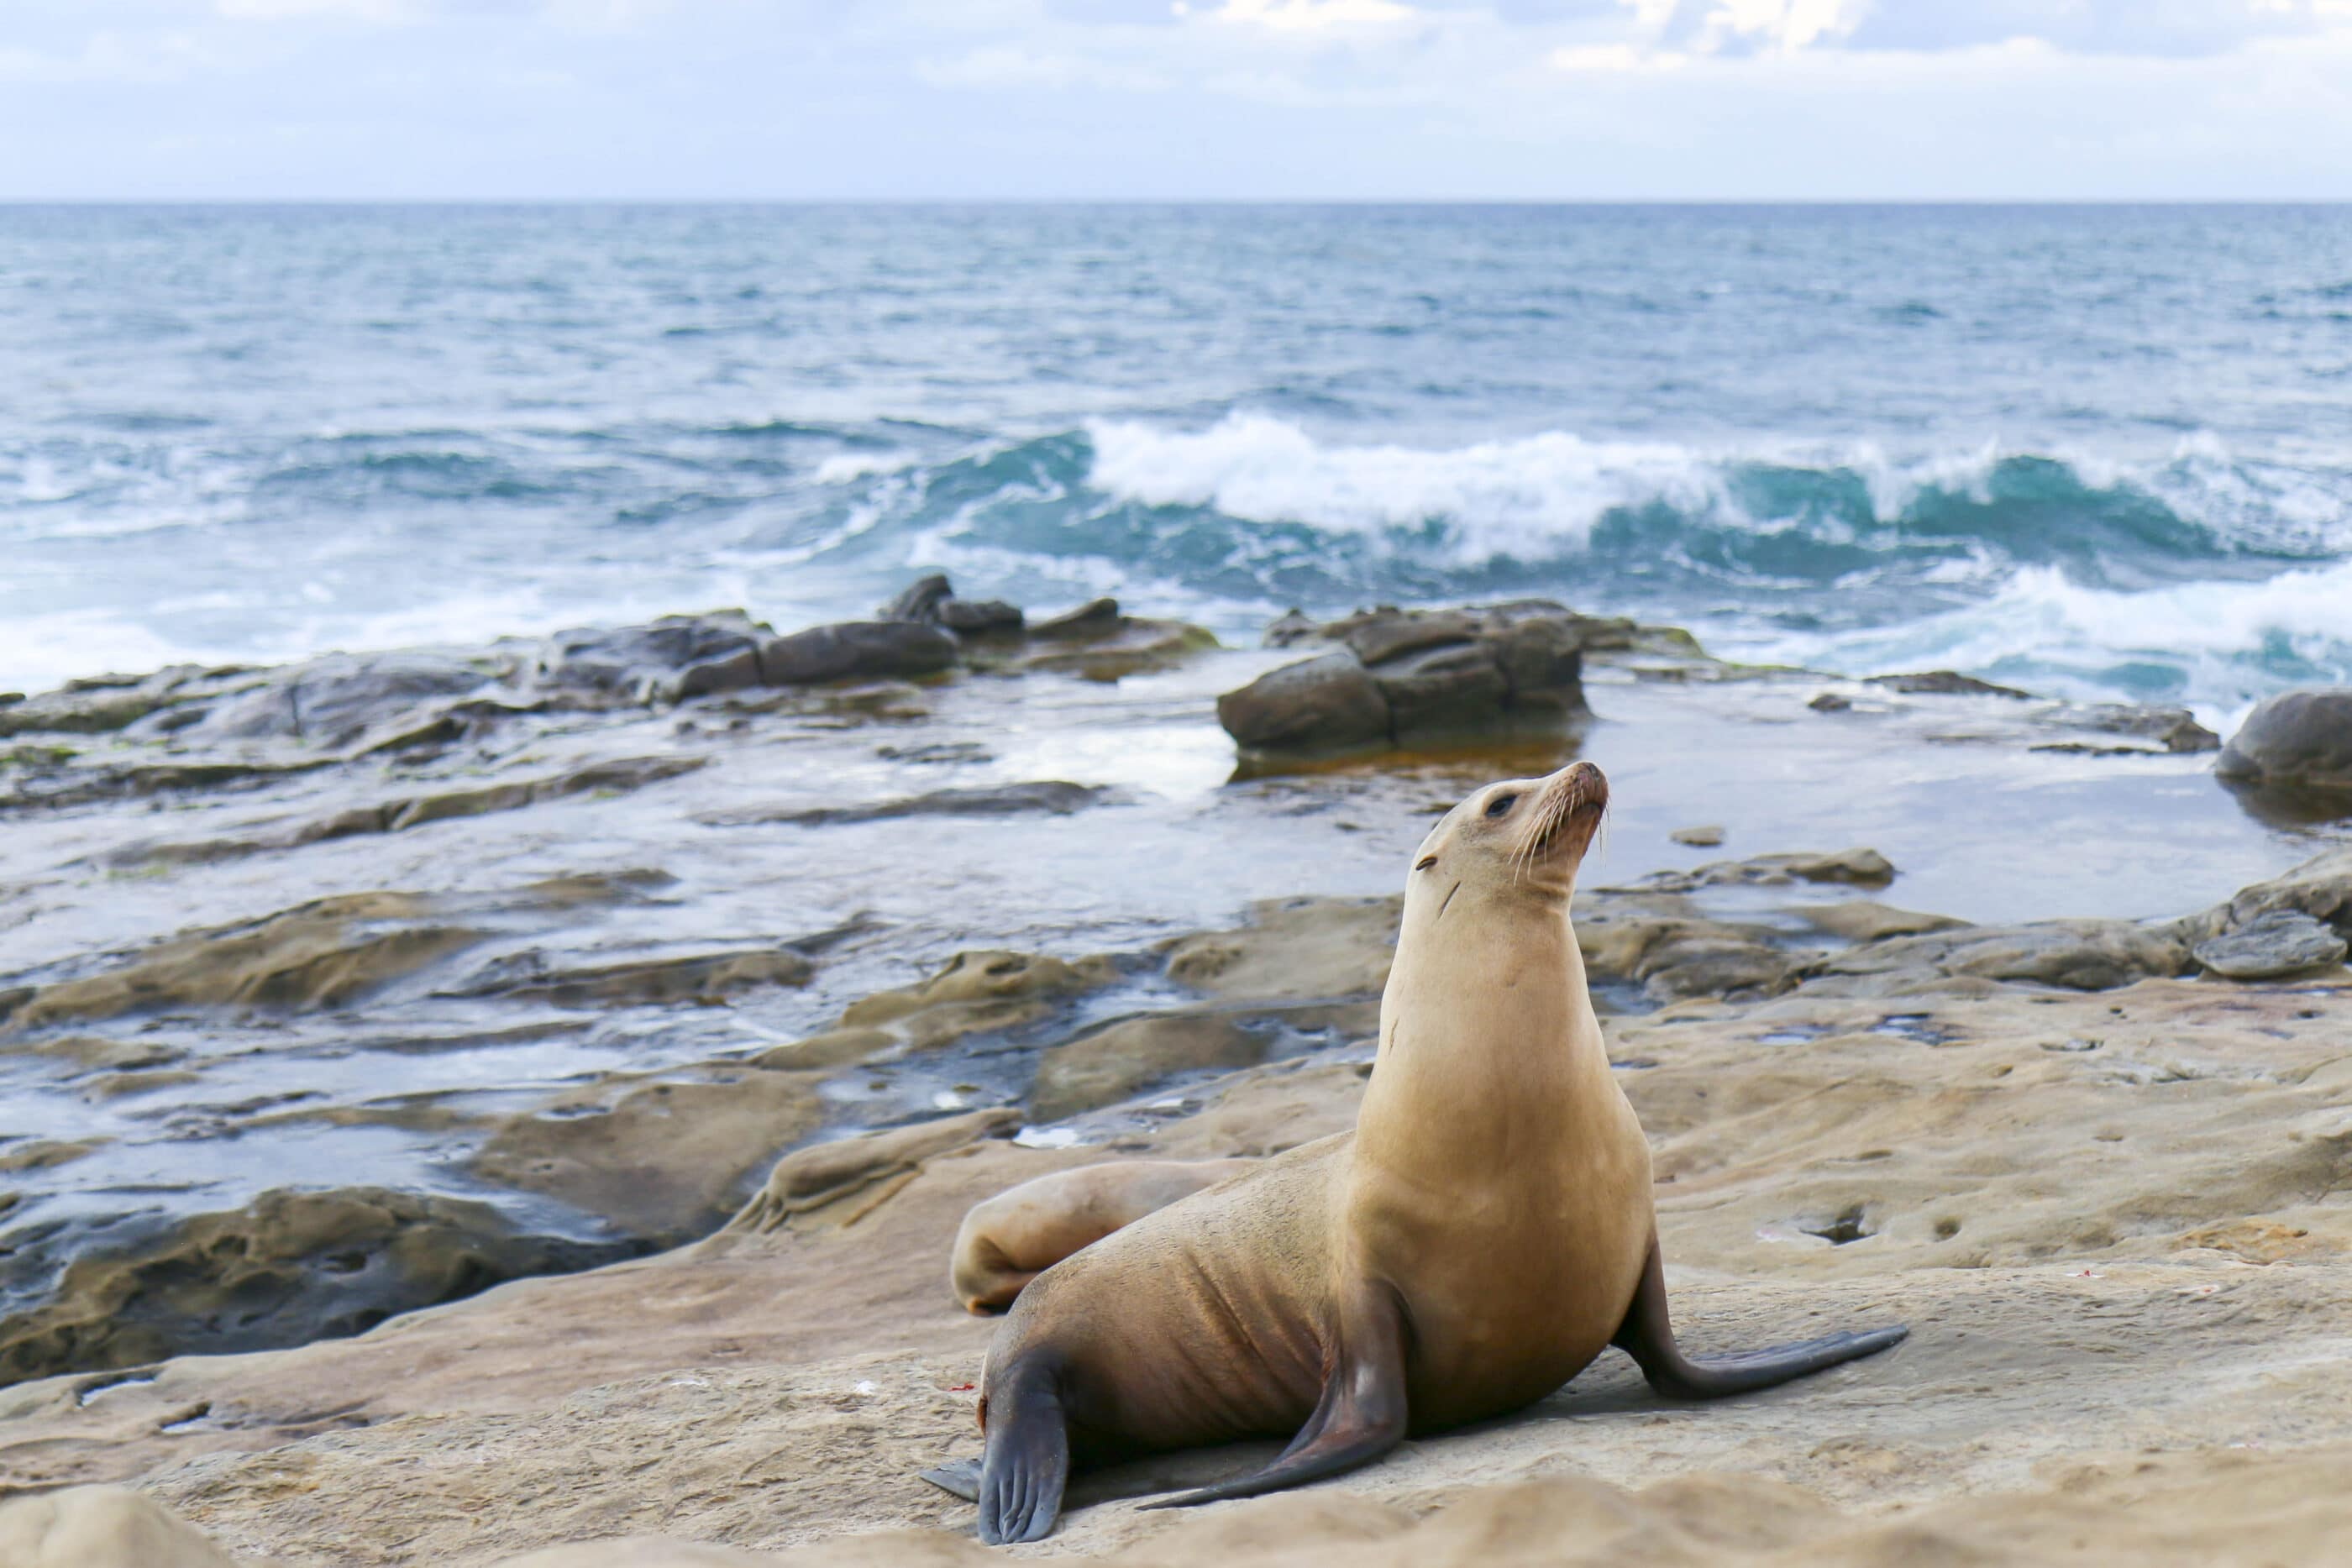 A sea lion on the rocks at La Jolla Cove, one of our best attractions.